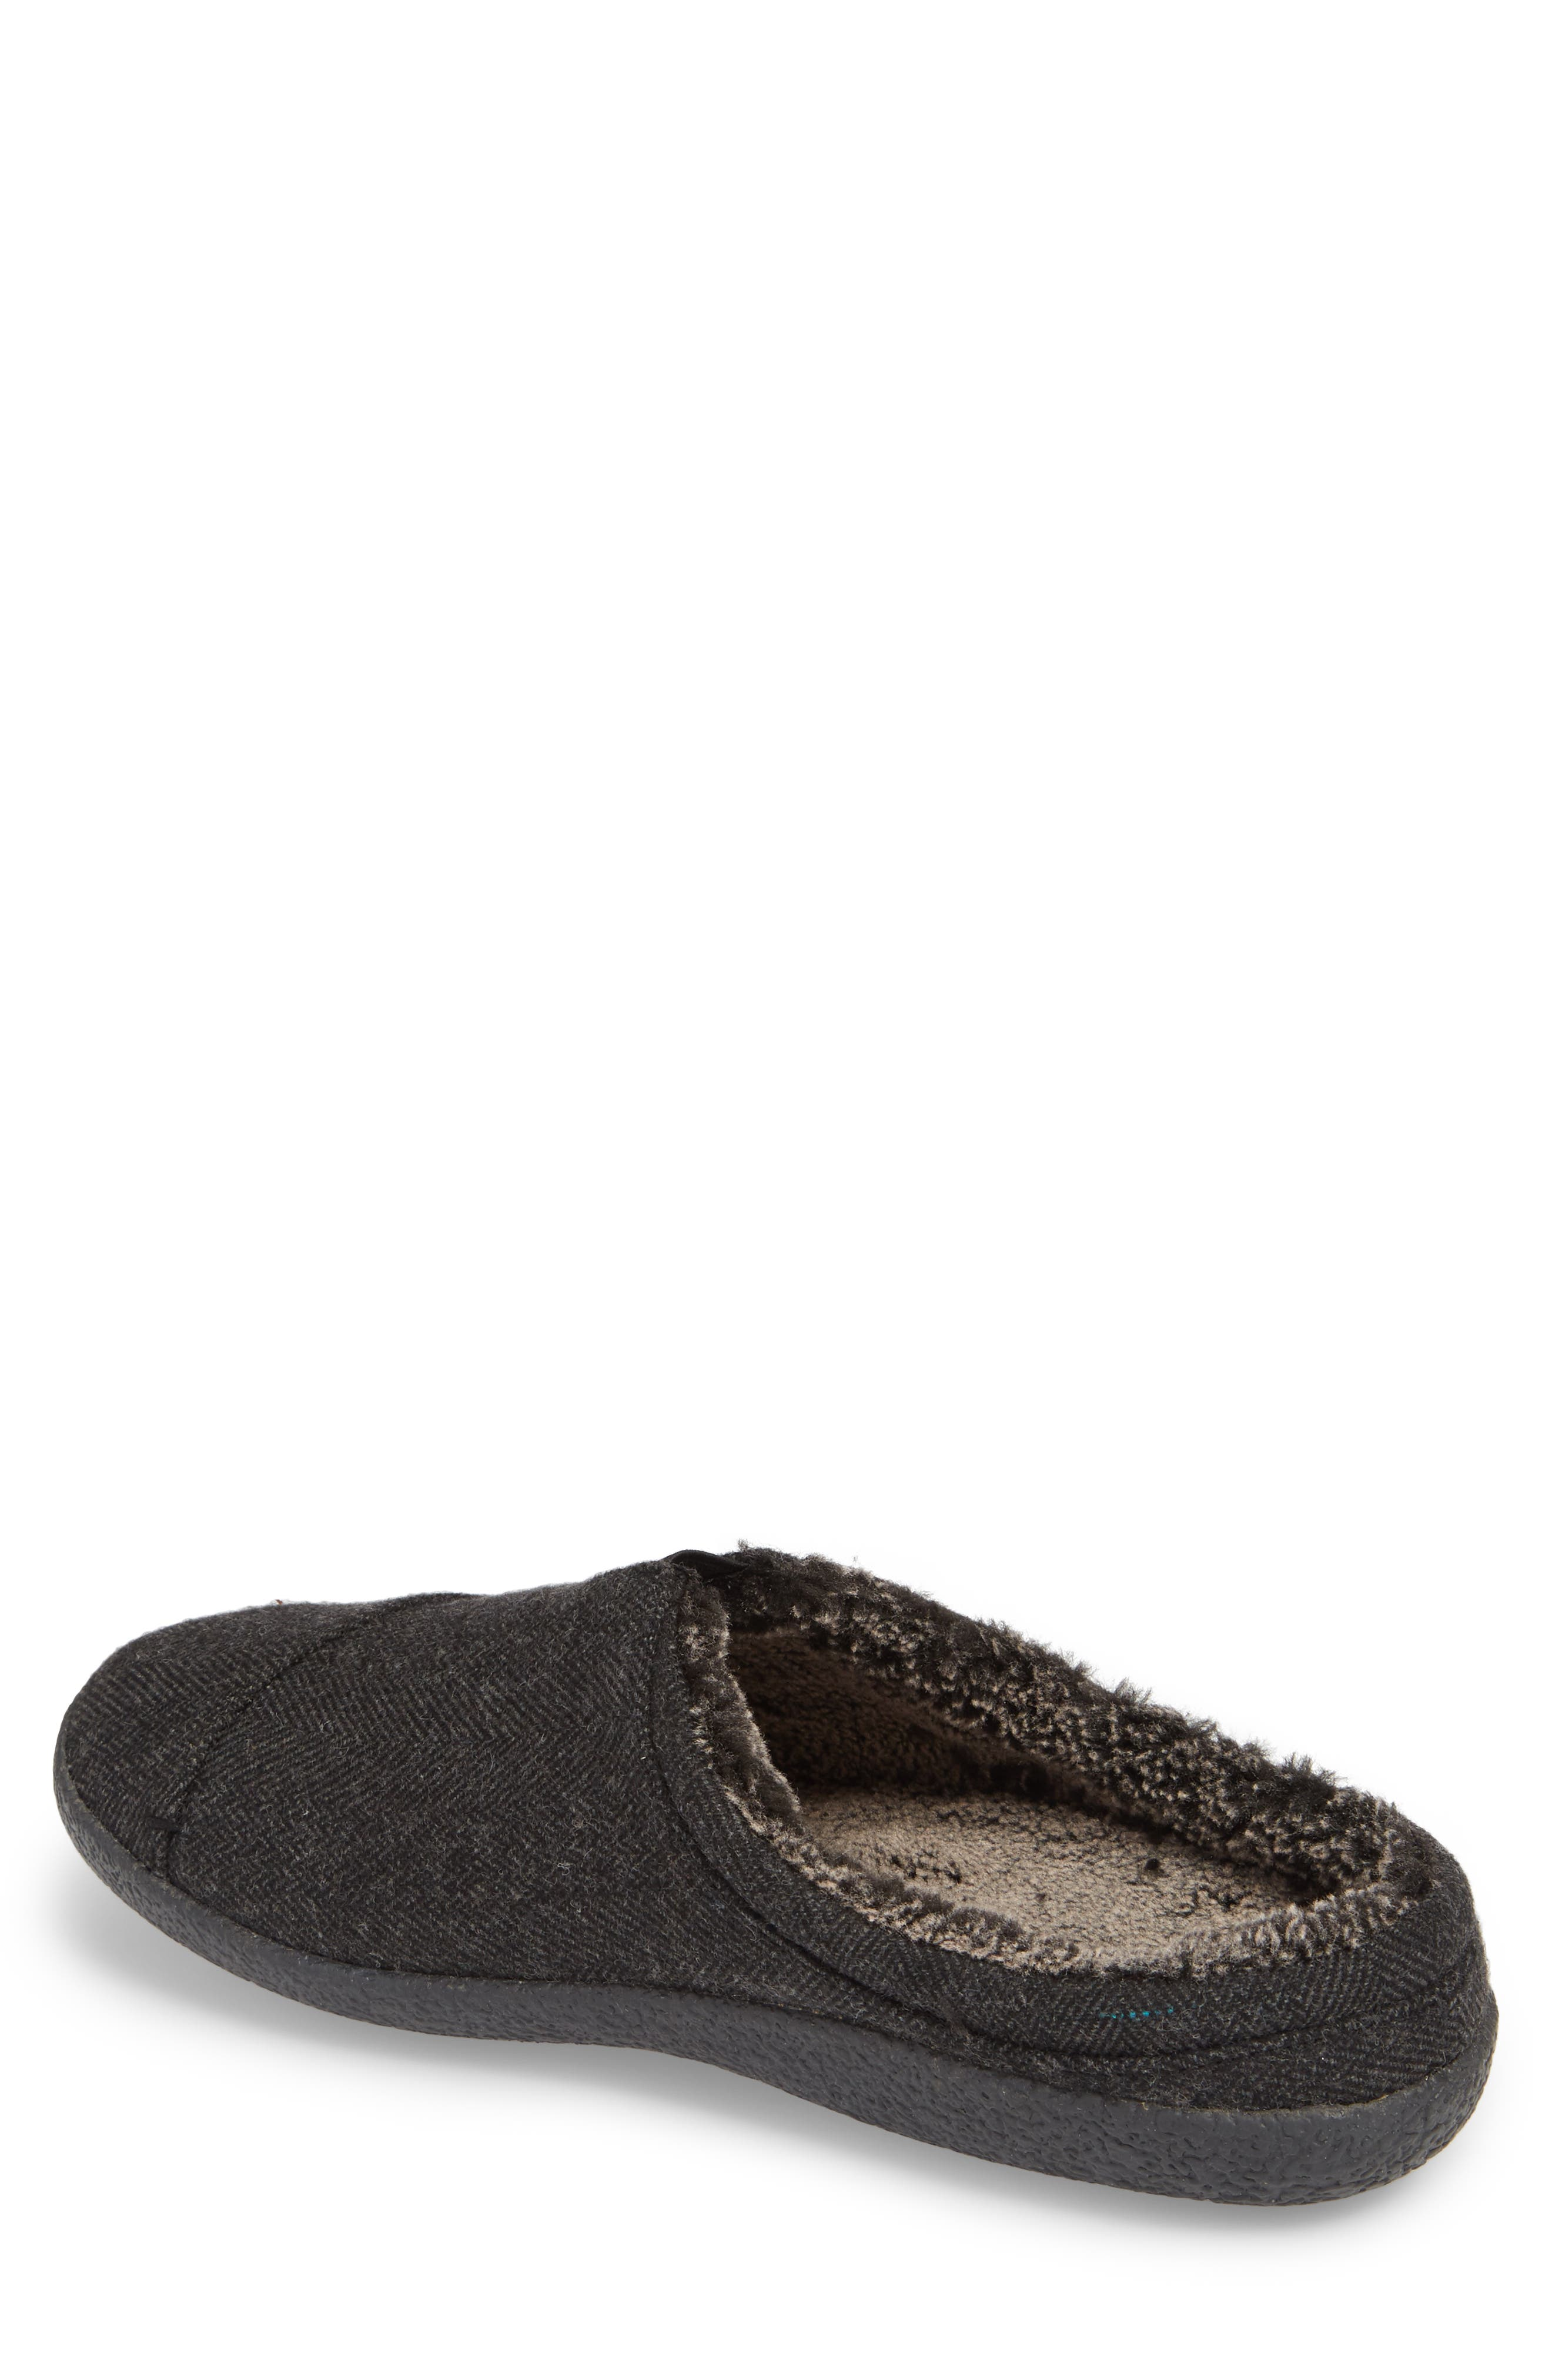 Berkeley Slipper with Faux Fur Lining,                             Alternate thumbnail 2, color,                             Black